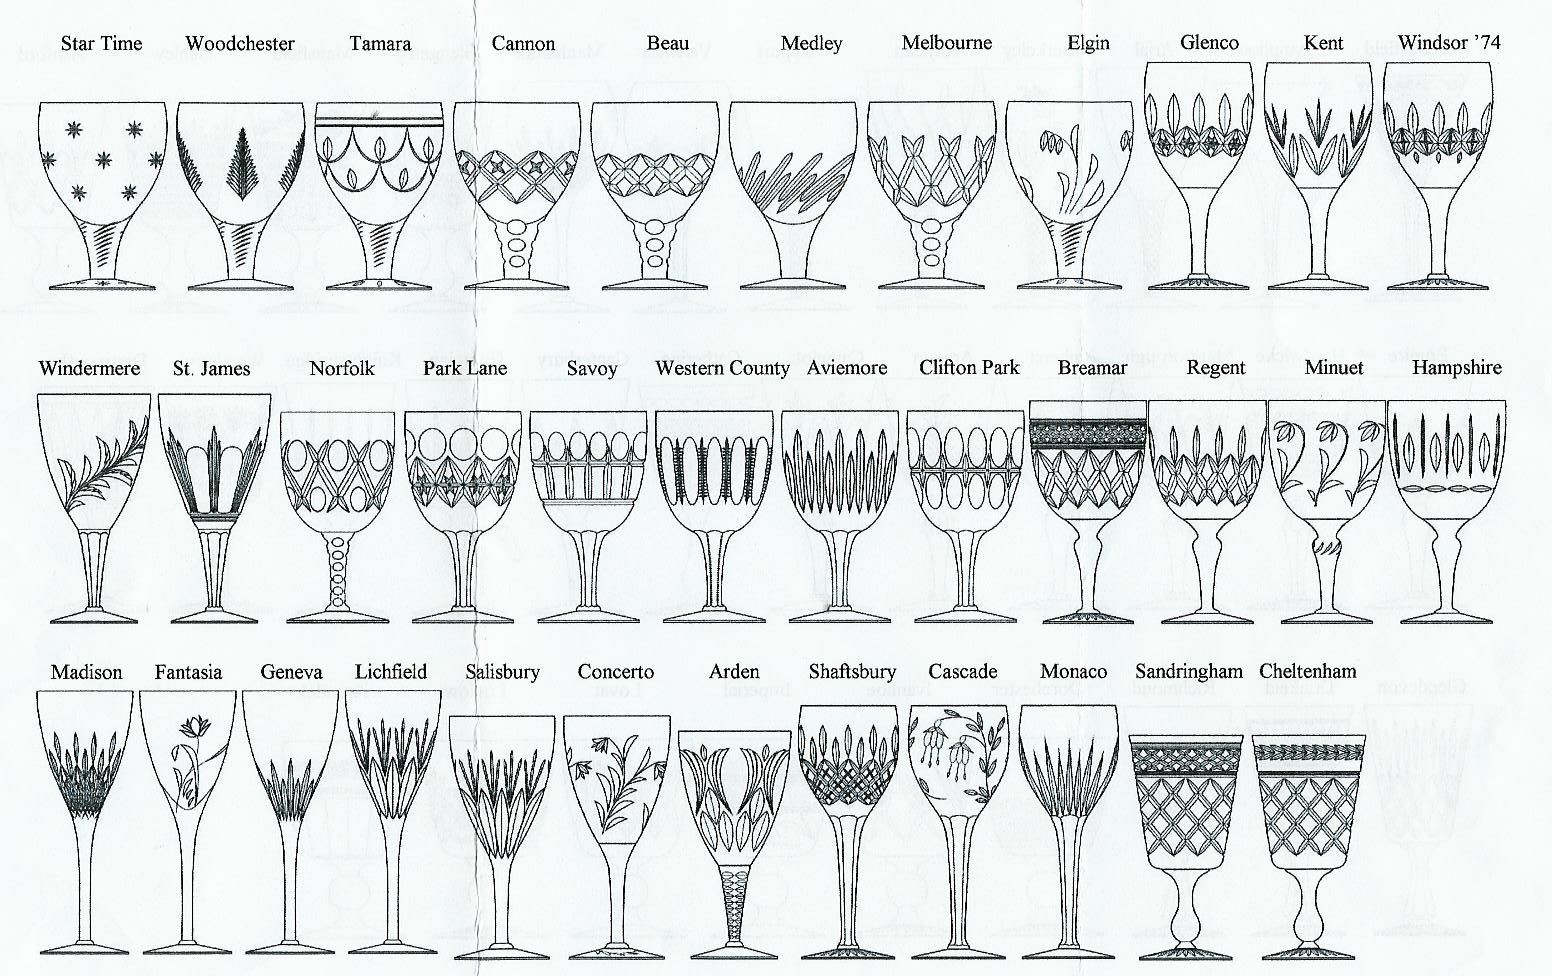 Retired Waterford Crystal Vase Patterns Of Pin by Joyce Troiani On Information Pinterest Glass Crystal Throughout Want Great Suggestions Concerning Kitchenware Head to My Amazing Website